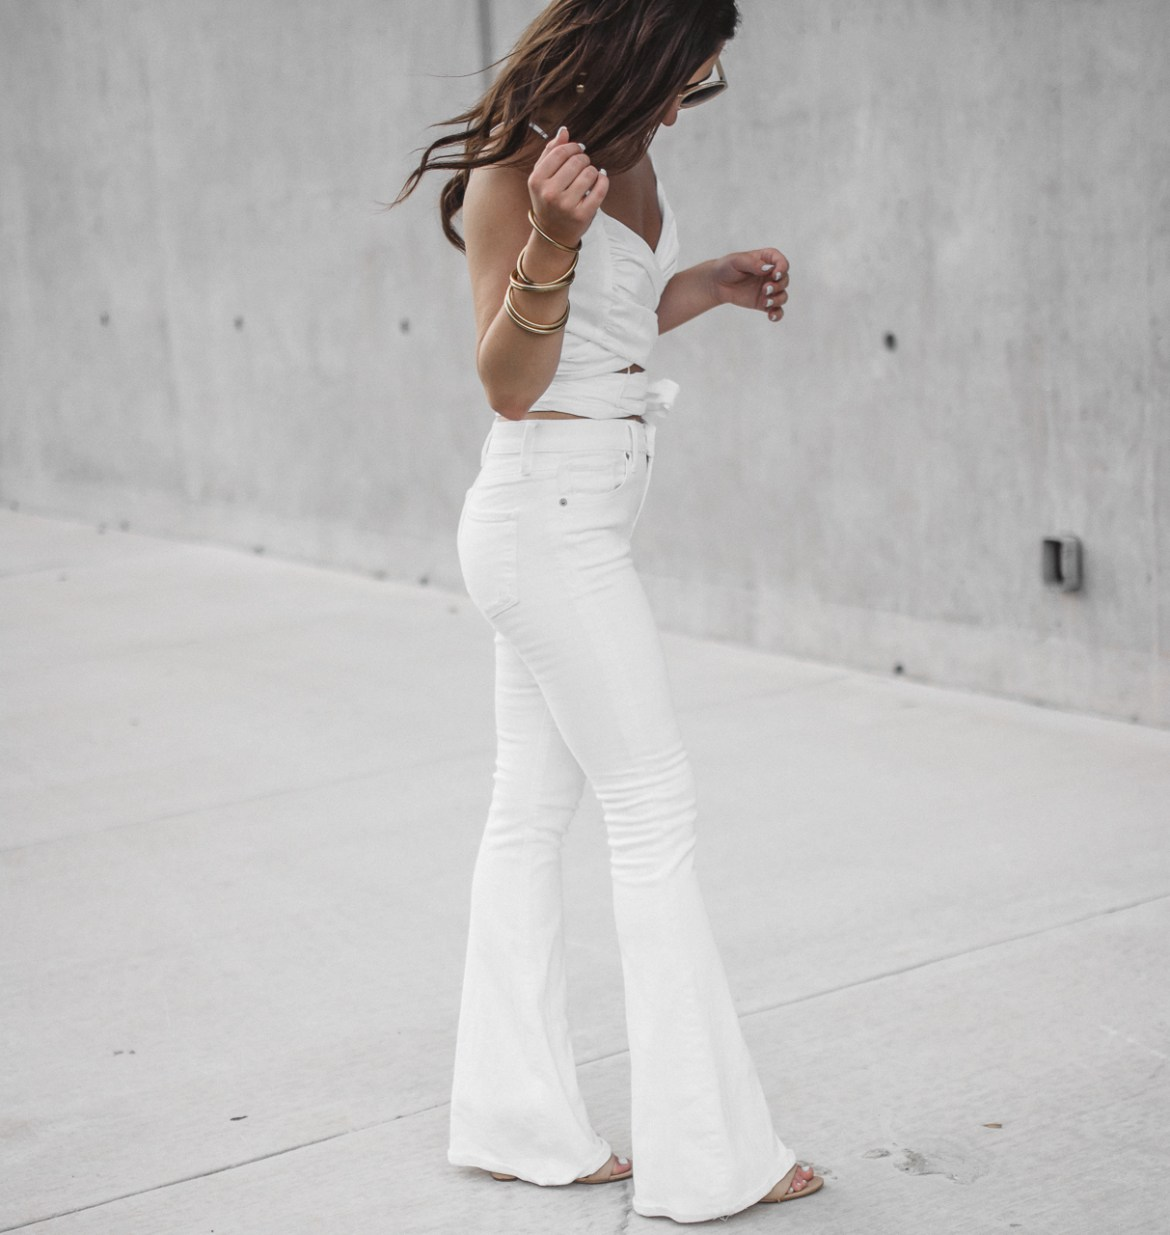 White Crop Top White Flared Jeans (22 of 23)